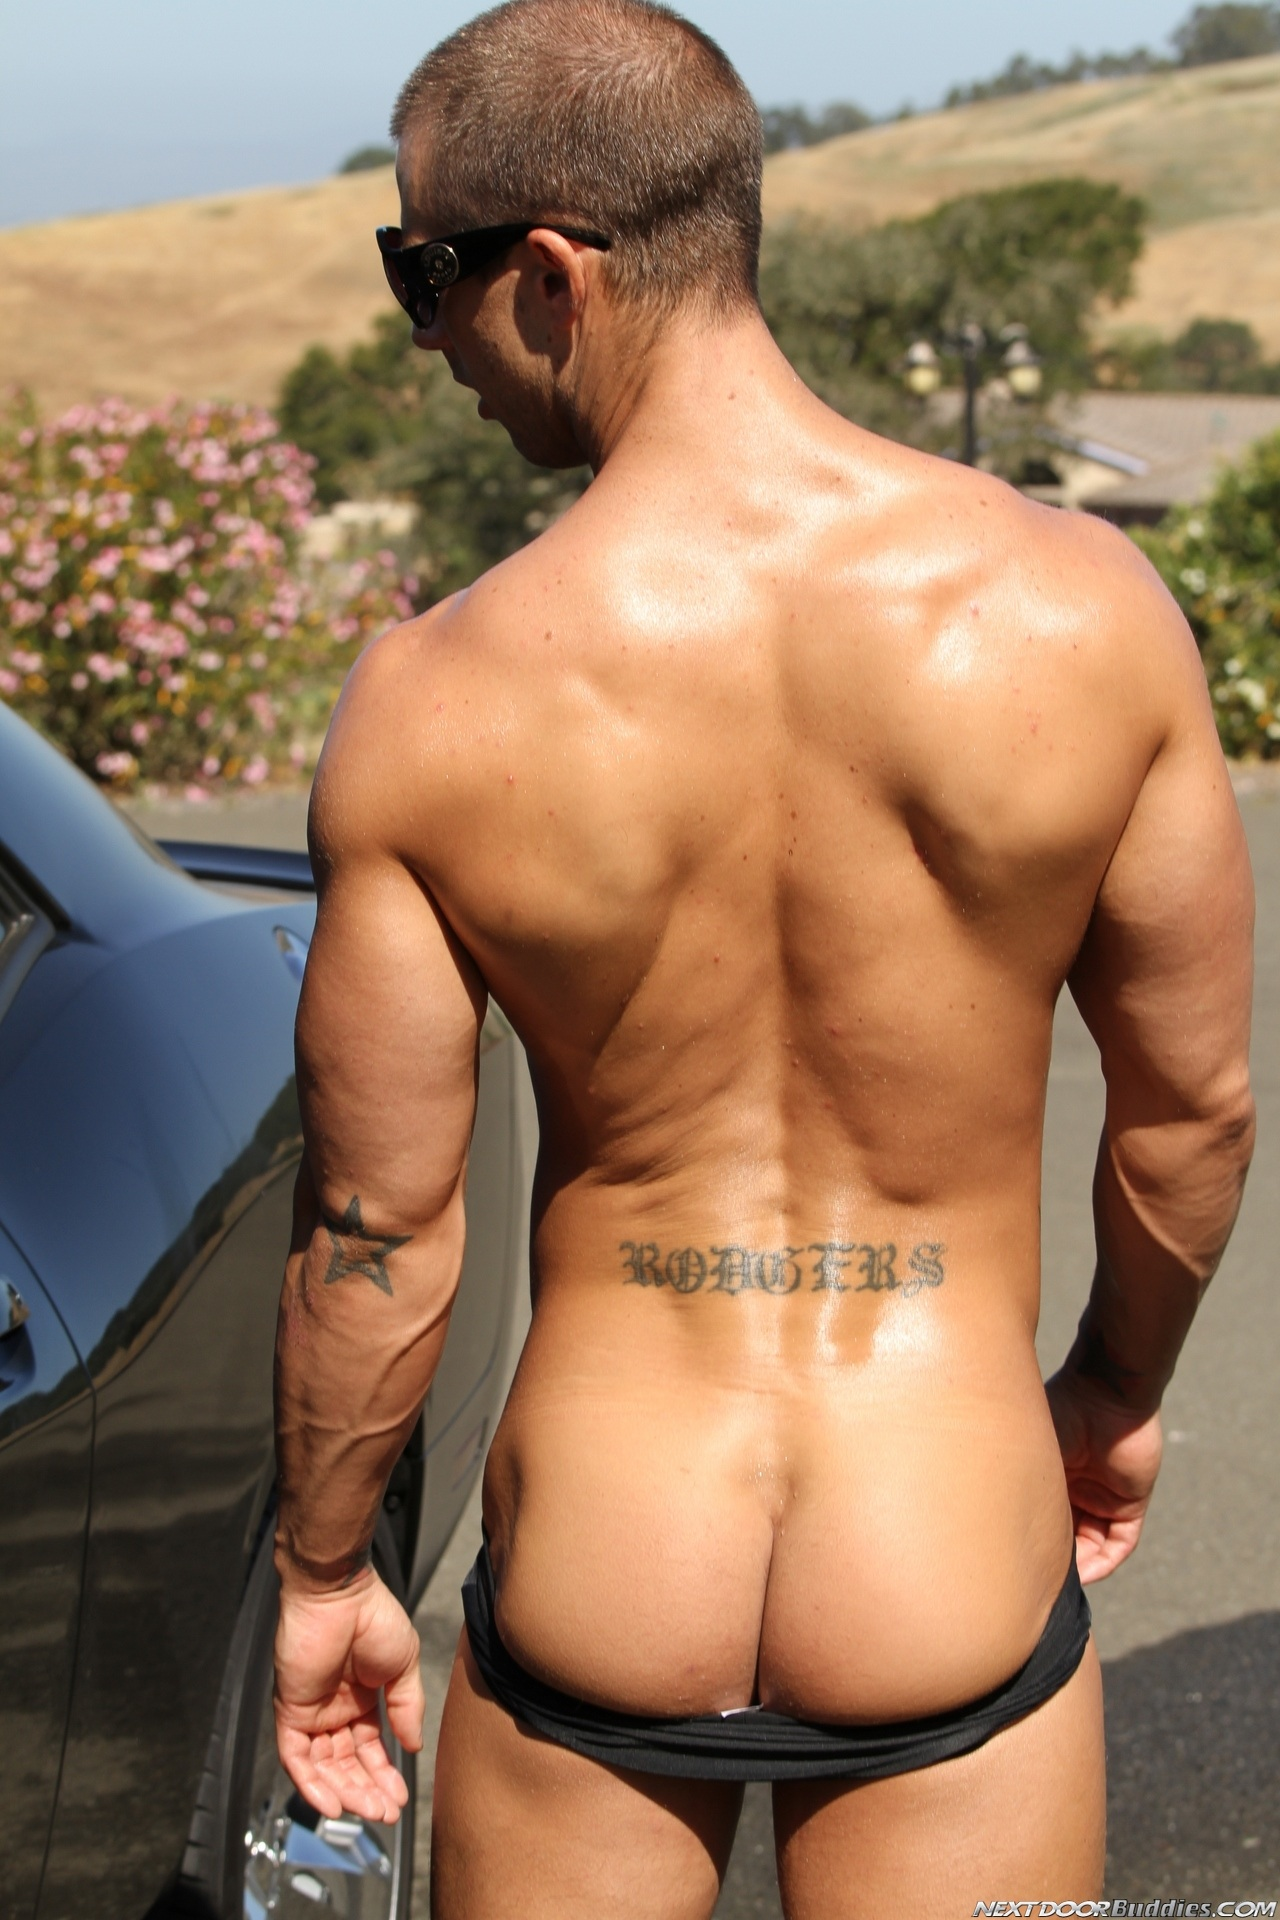 Marcus-Mojo-Brody-Wilder-Johnny-Torque-Rod-Daily-Donny-Wright-washing-a-car-in-Suds-Studs-Next-Door-Studios-13